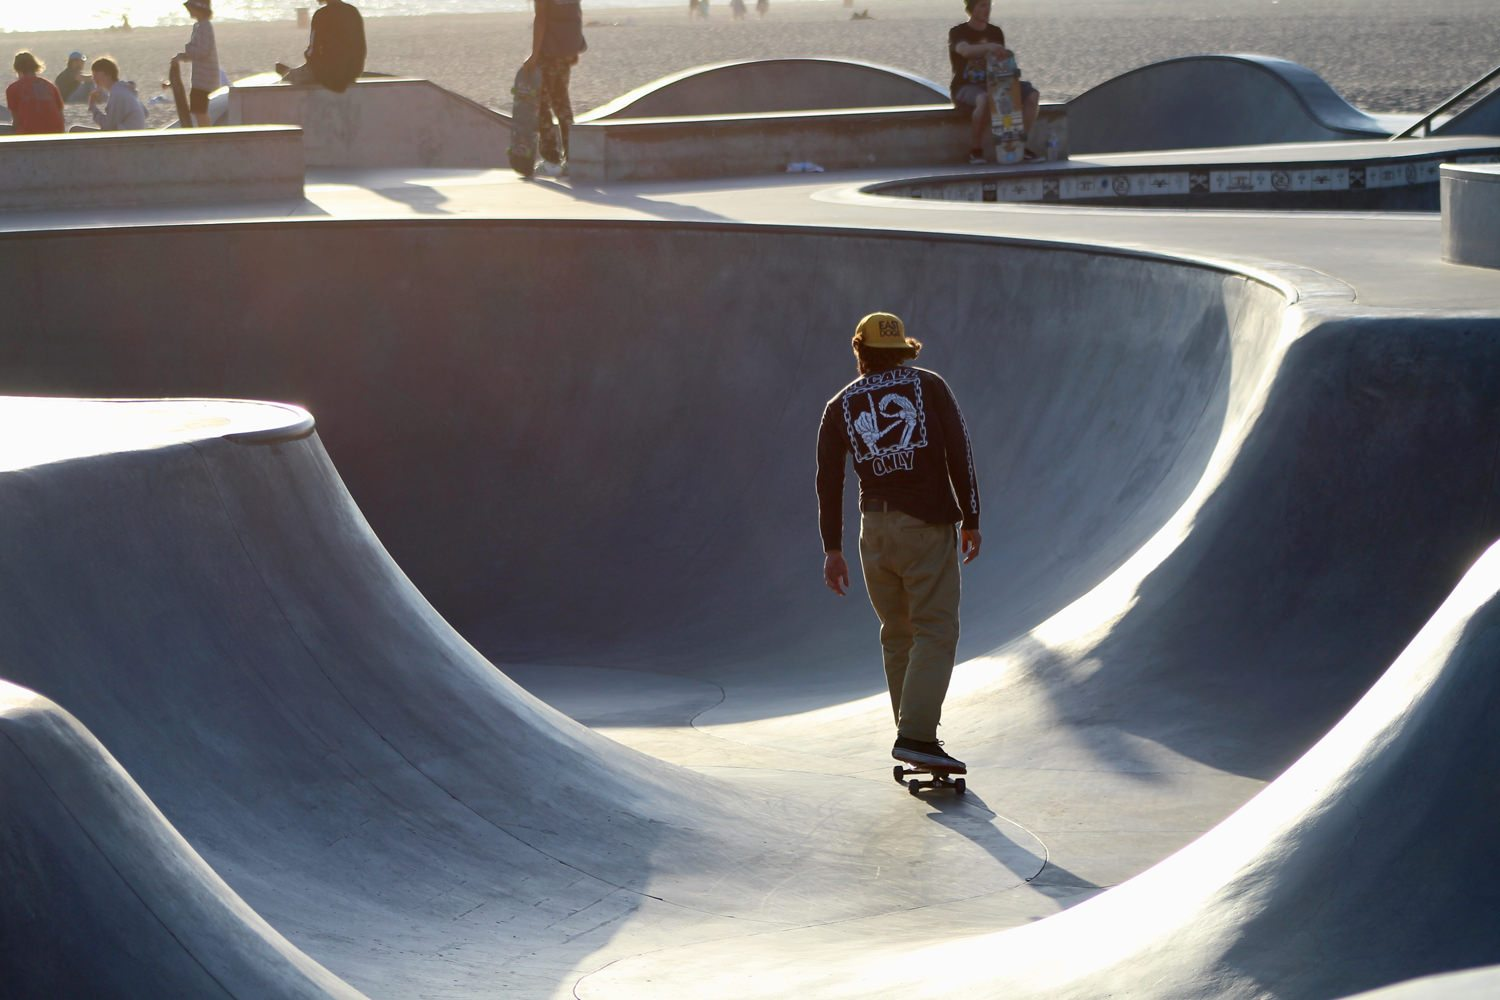 Skateboard Pool at Venice Beach - Santa Monica Pier - Bordwalk